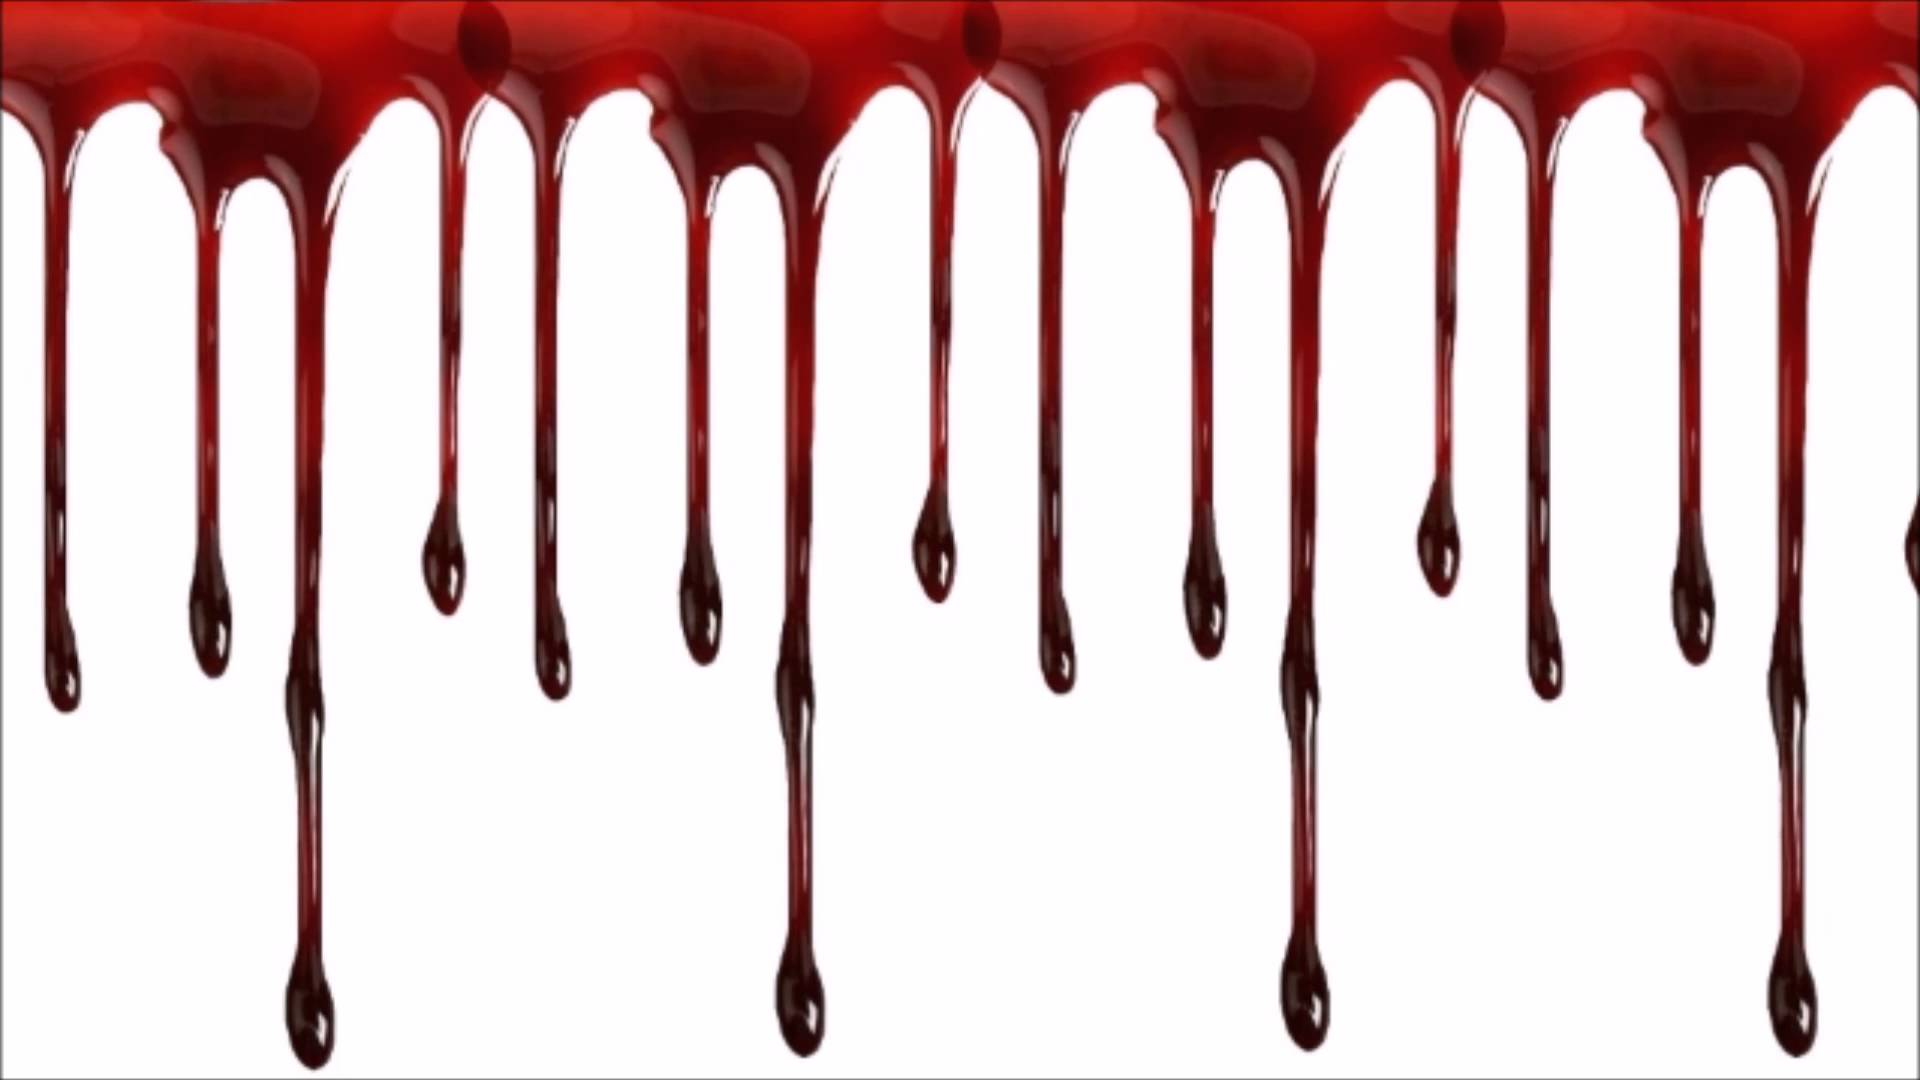 blood-drips